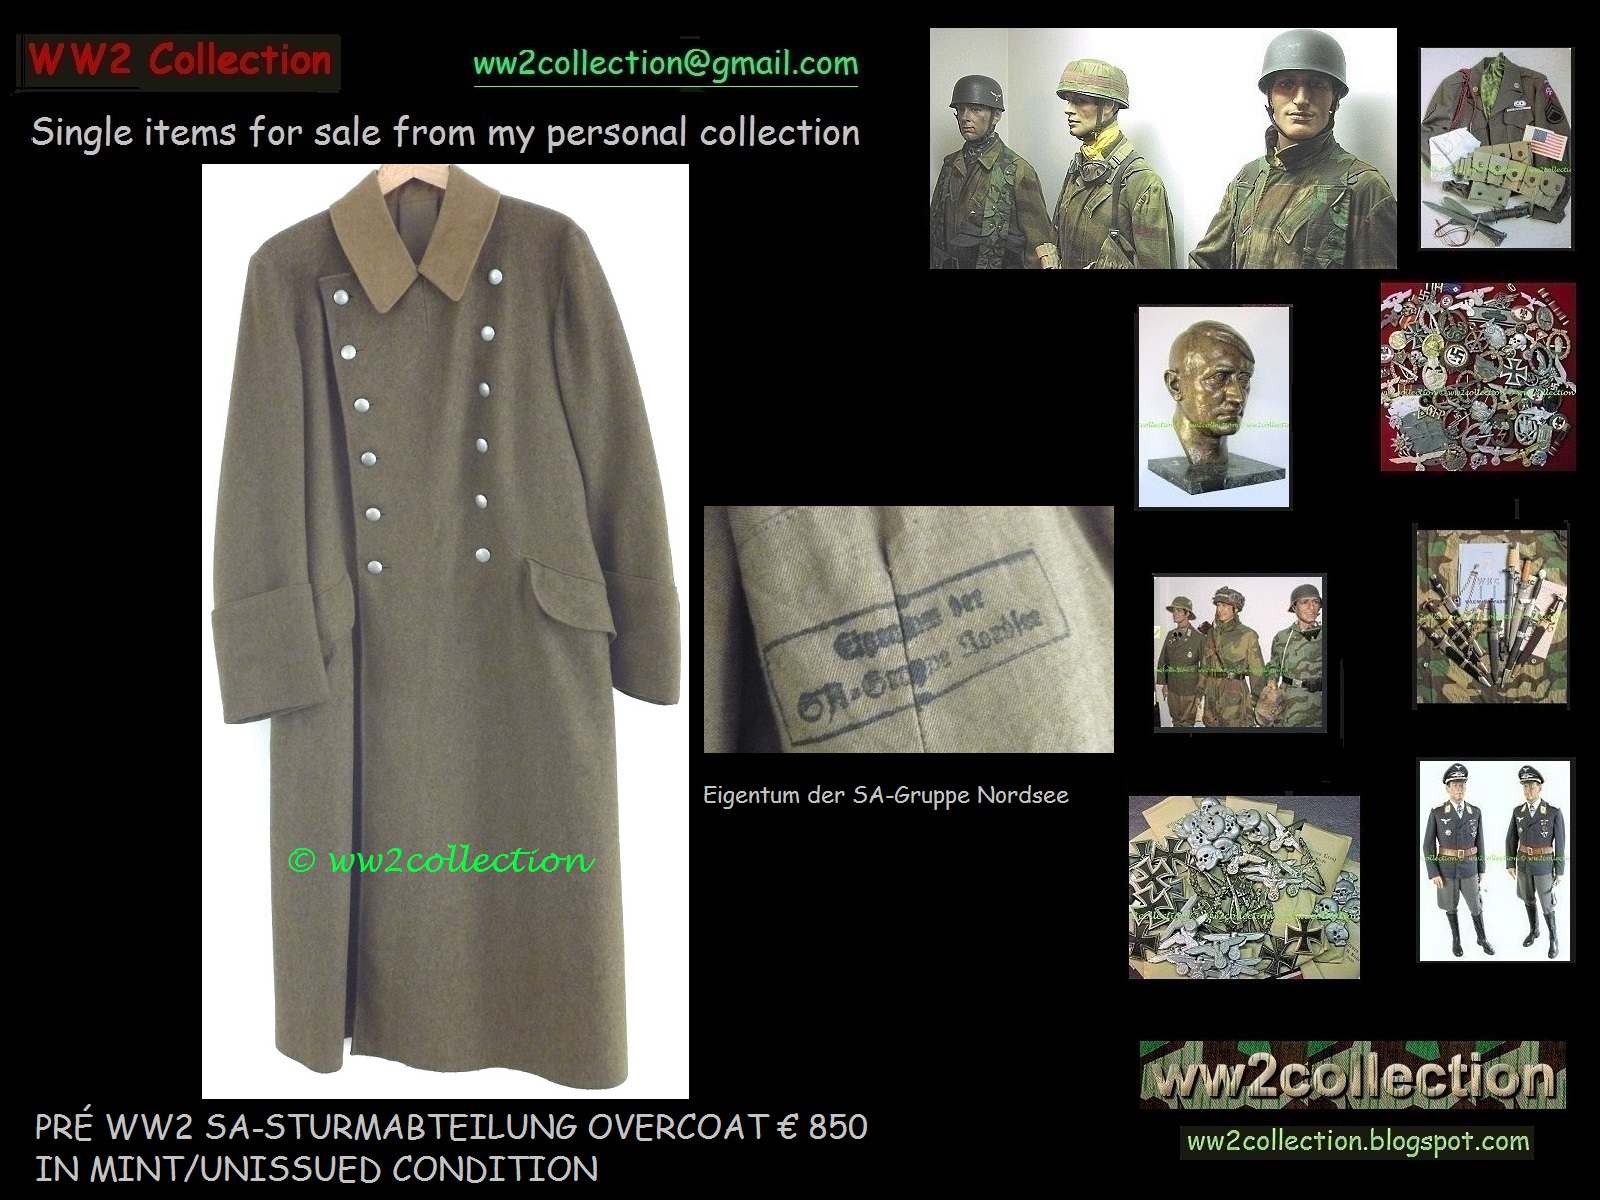 WW2 Collection Price List of my Private Collection Liquidation: SA